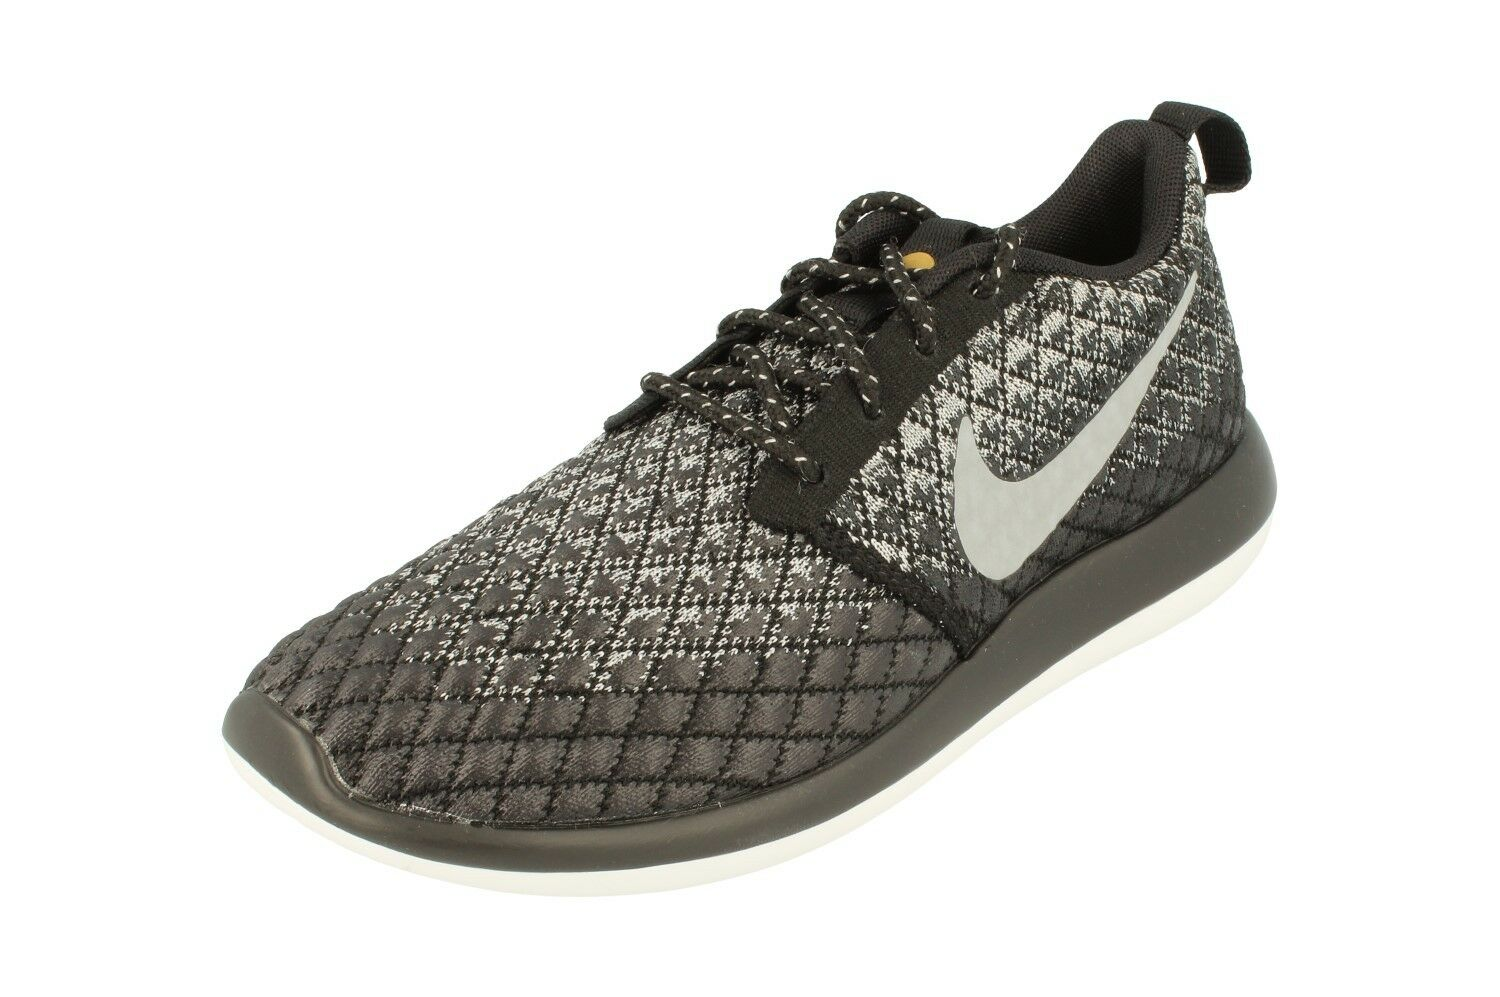 Nike Womens Roshe Two Flyknit 365 Running Trainers 861706 001 Sneakers shoes